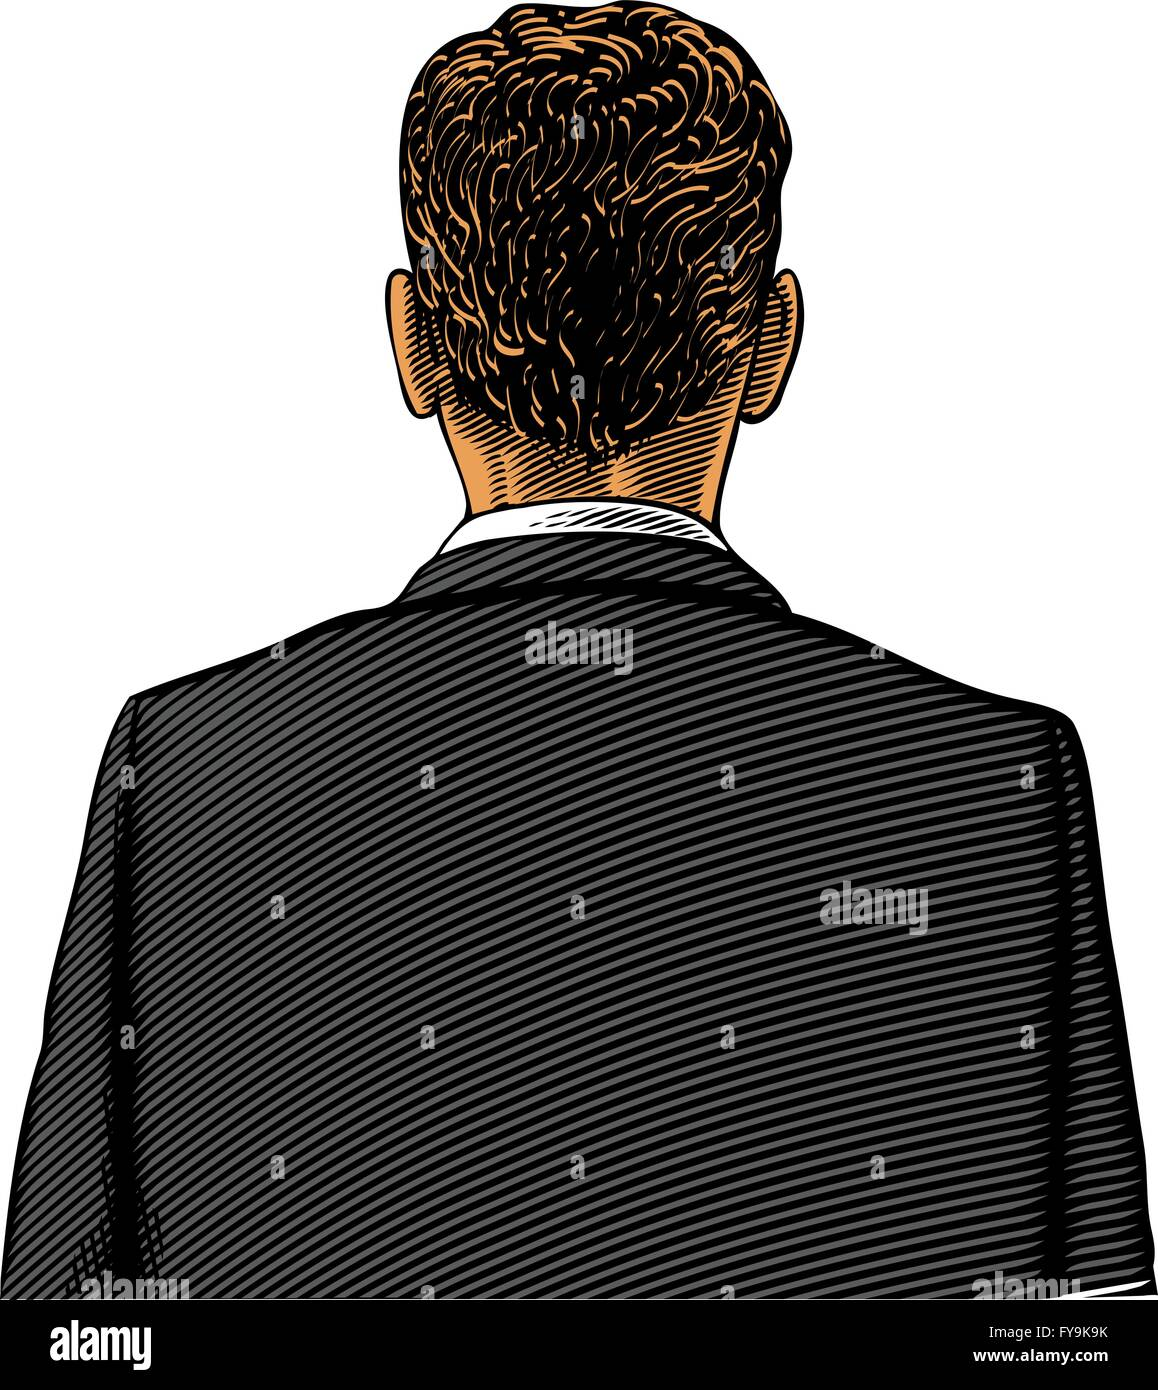 Man in suit from back or rear view in engraving style - Stock Vector